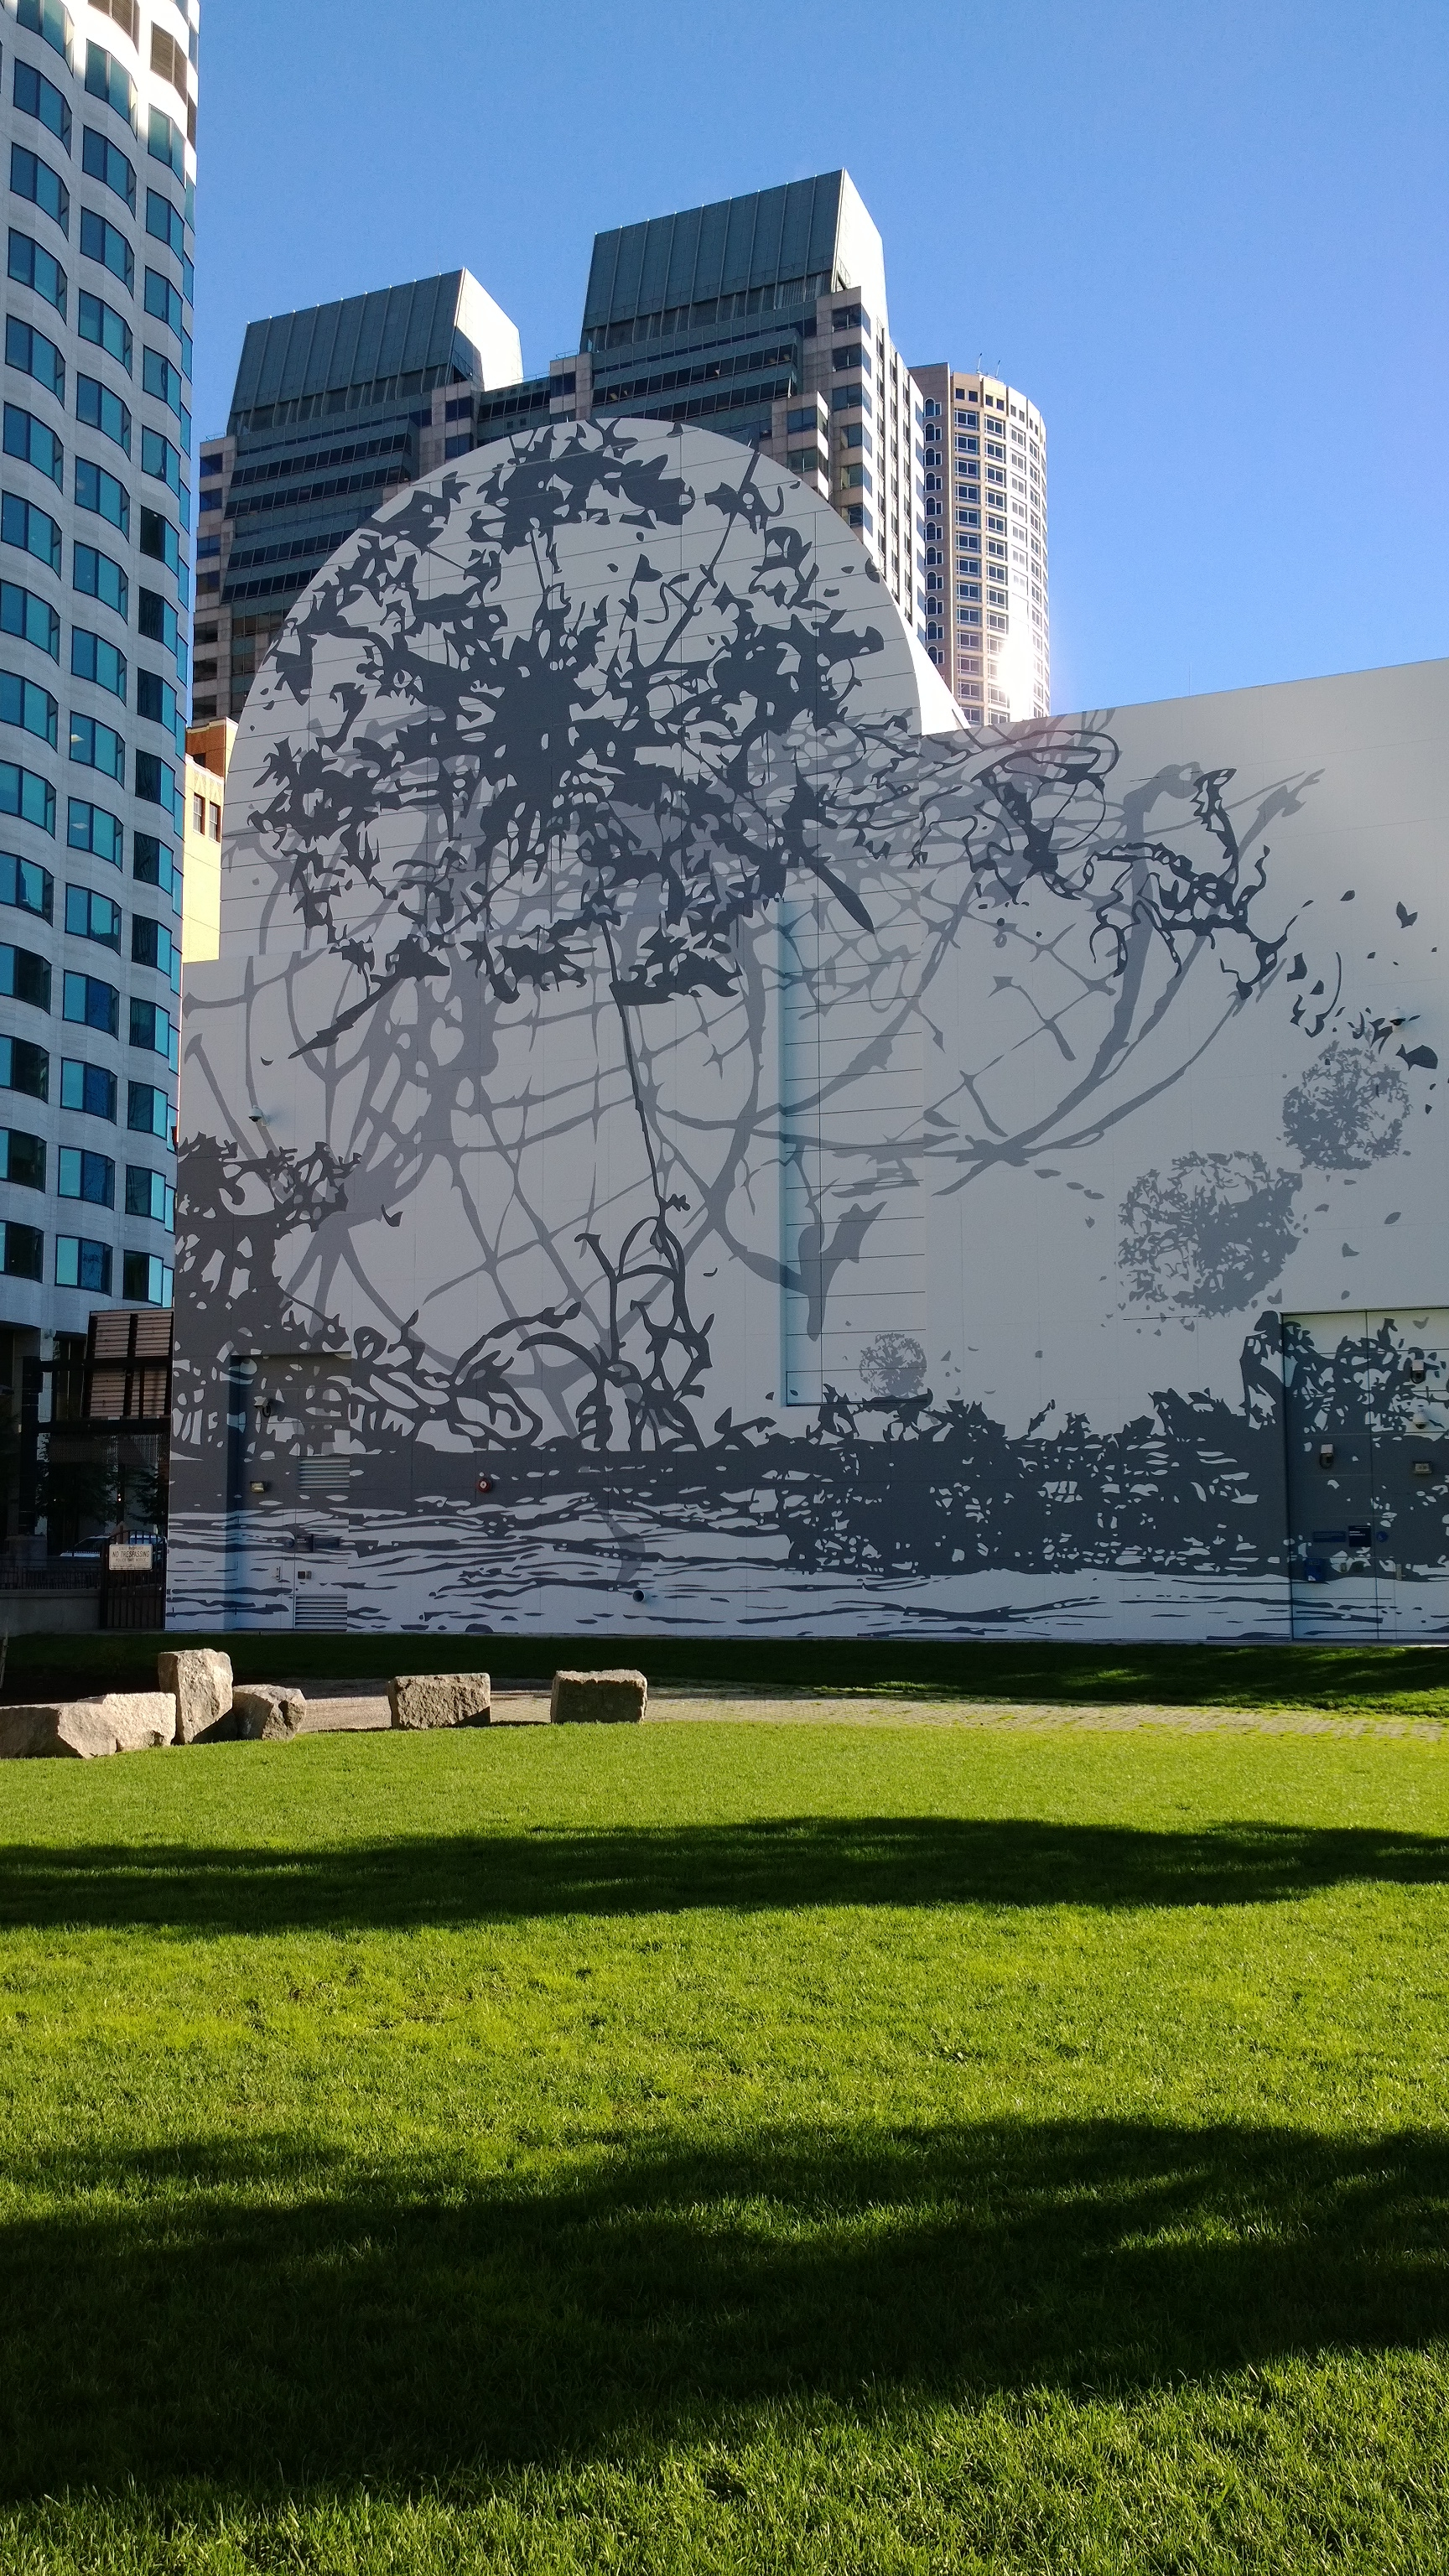 Matthew ritchie suzanne 39 s mom 39 s blog for Dewey square mural